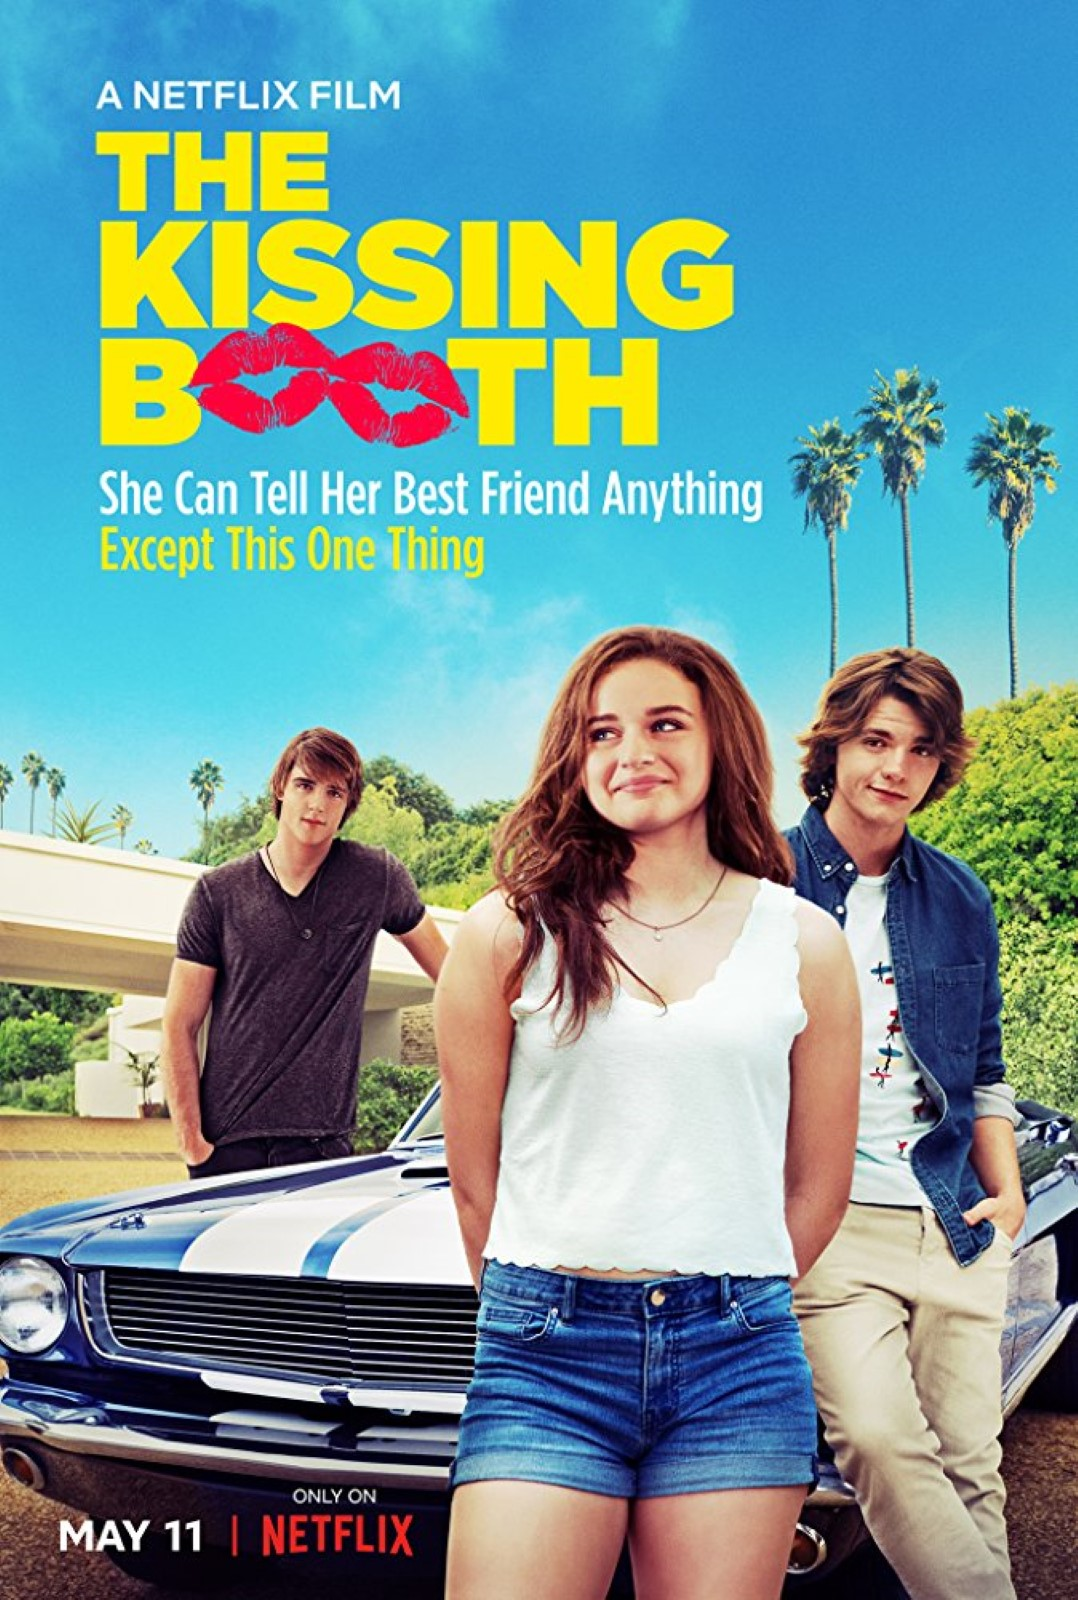 The kissing booth - Streaming coup de foudre a notting hill ...